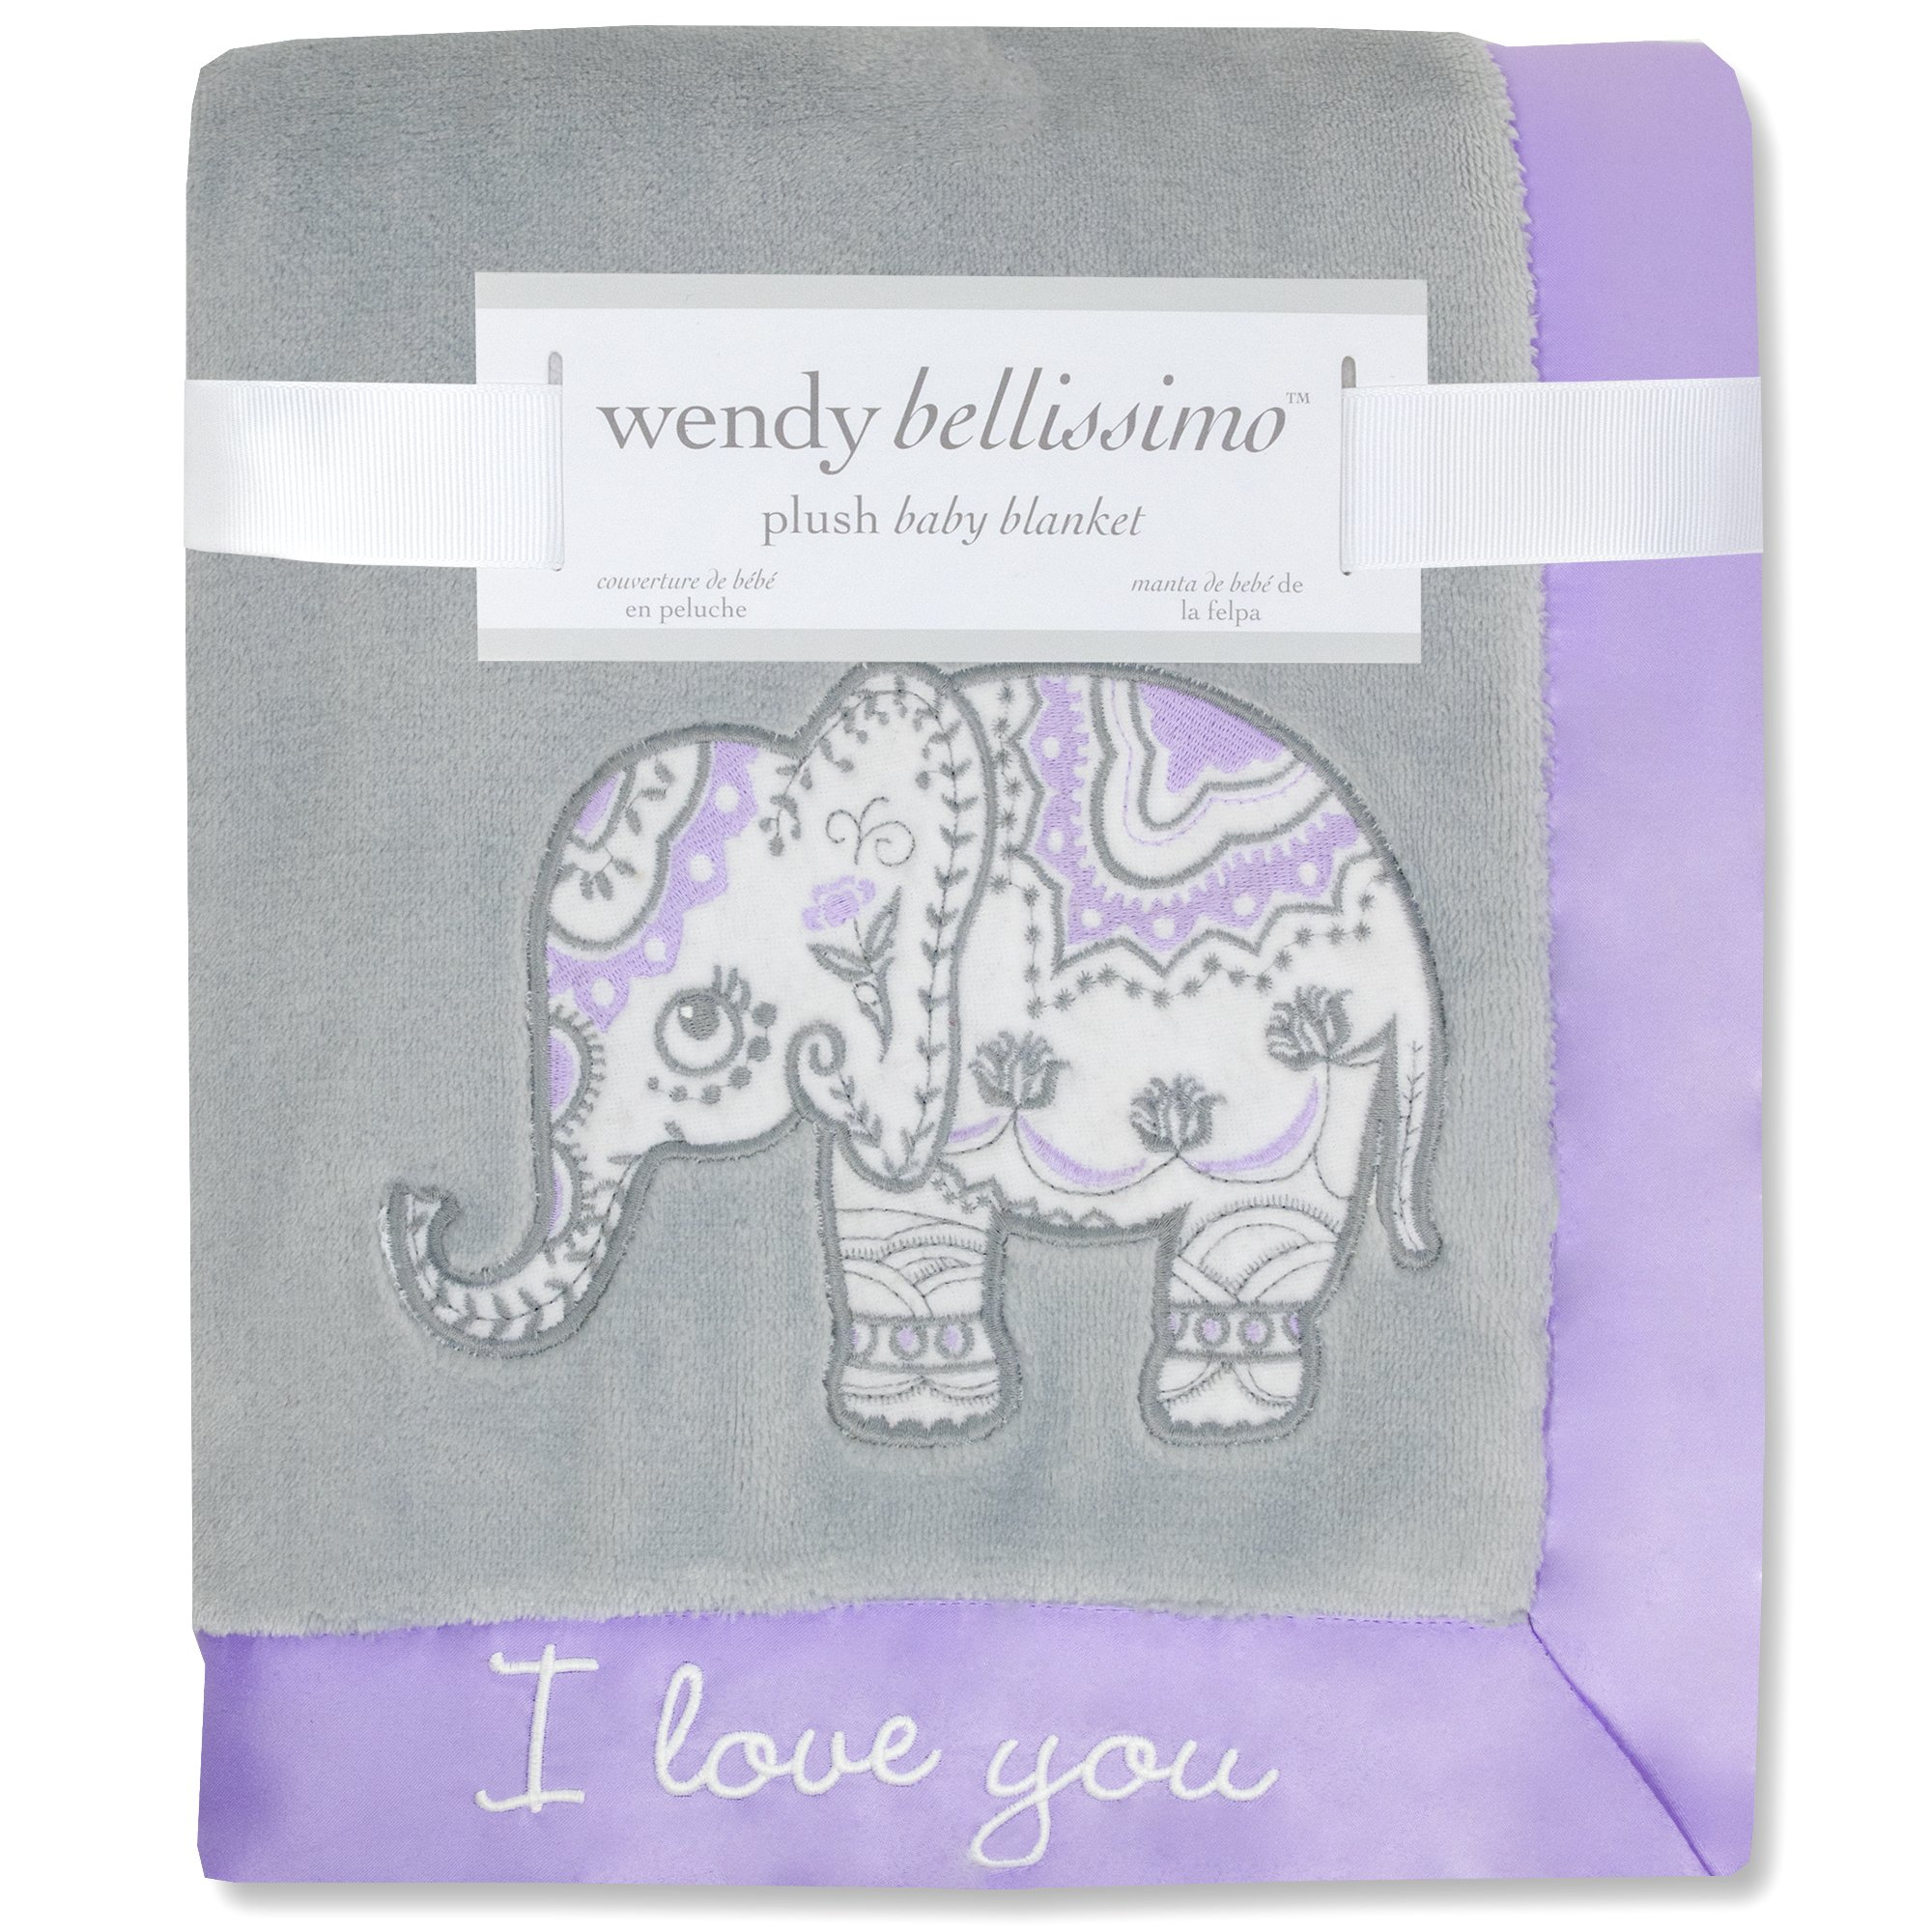 Wendy Bellissimo Super Soft Plush Baby Blanket - Elephant Baby Blanket from the Anya Collection in